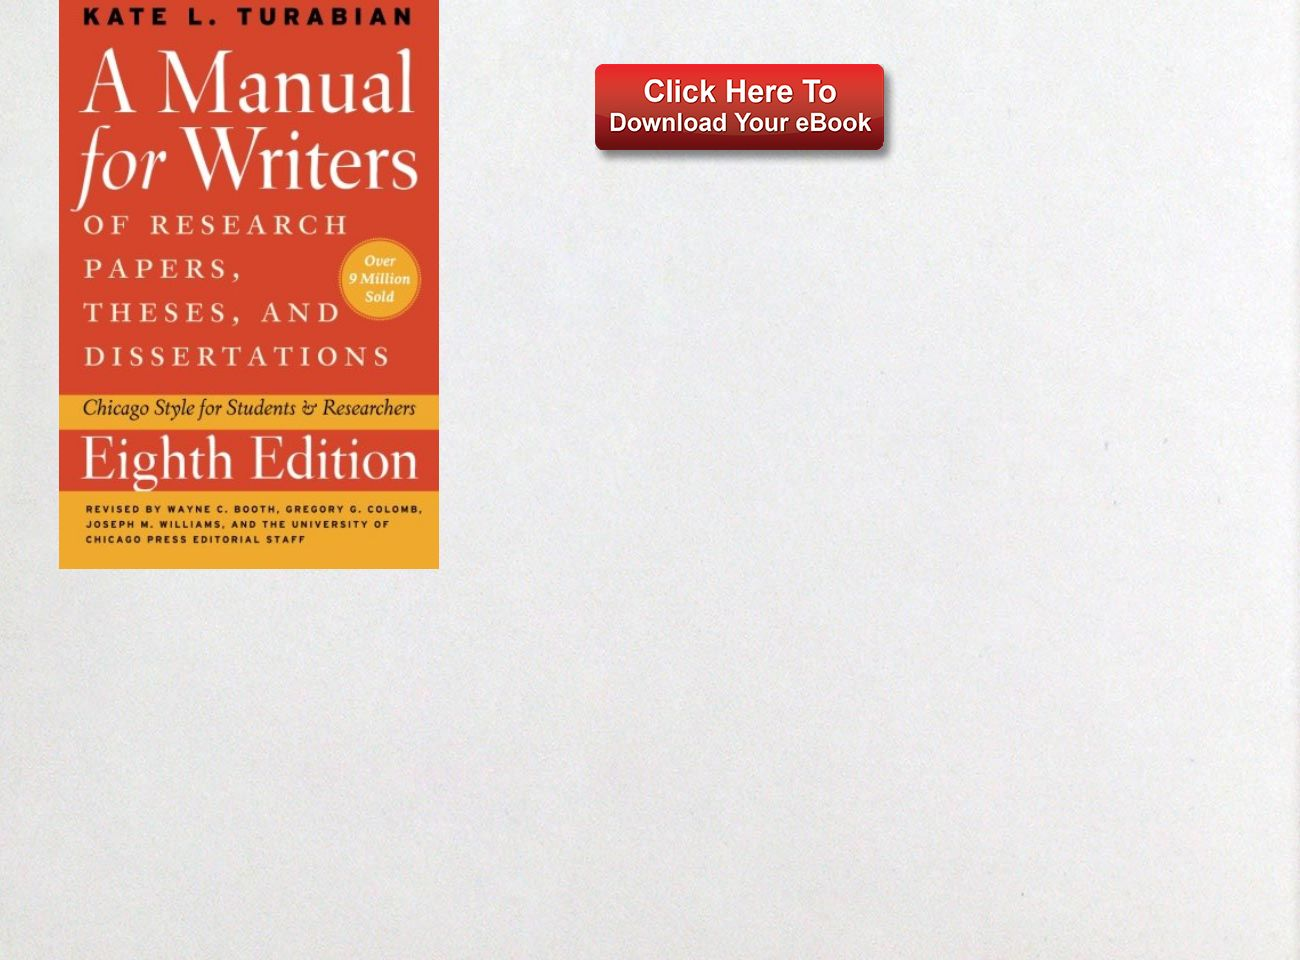 017 Research Paper Manual For Writers Of Papers Theses And Dissertations 8th Edition Staggering A Pdf Full